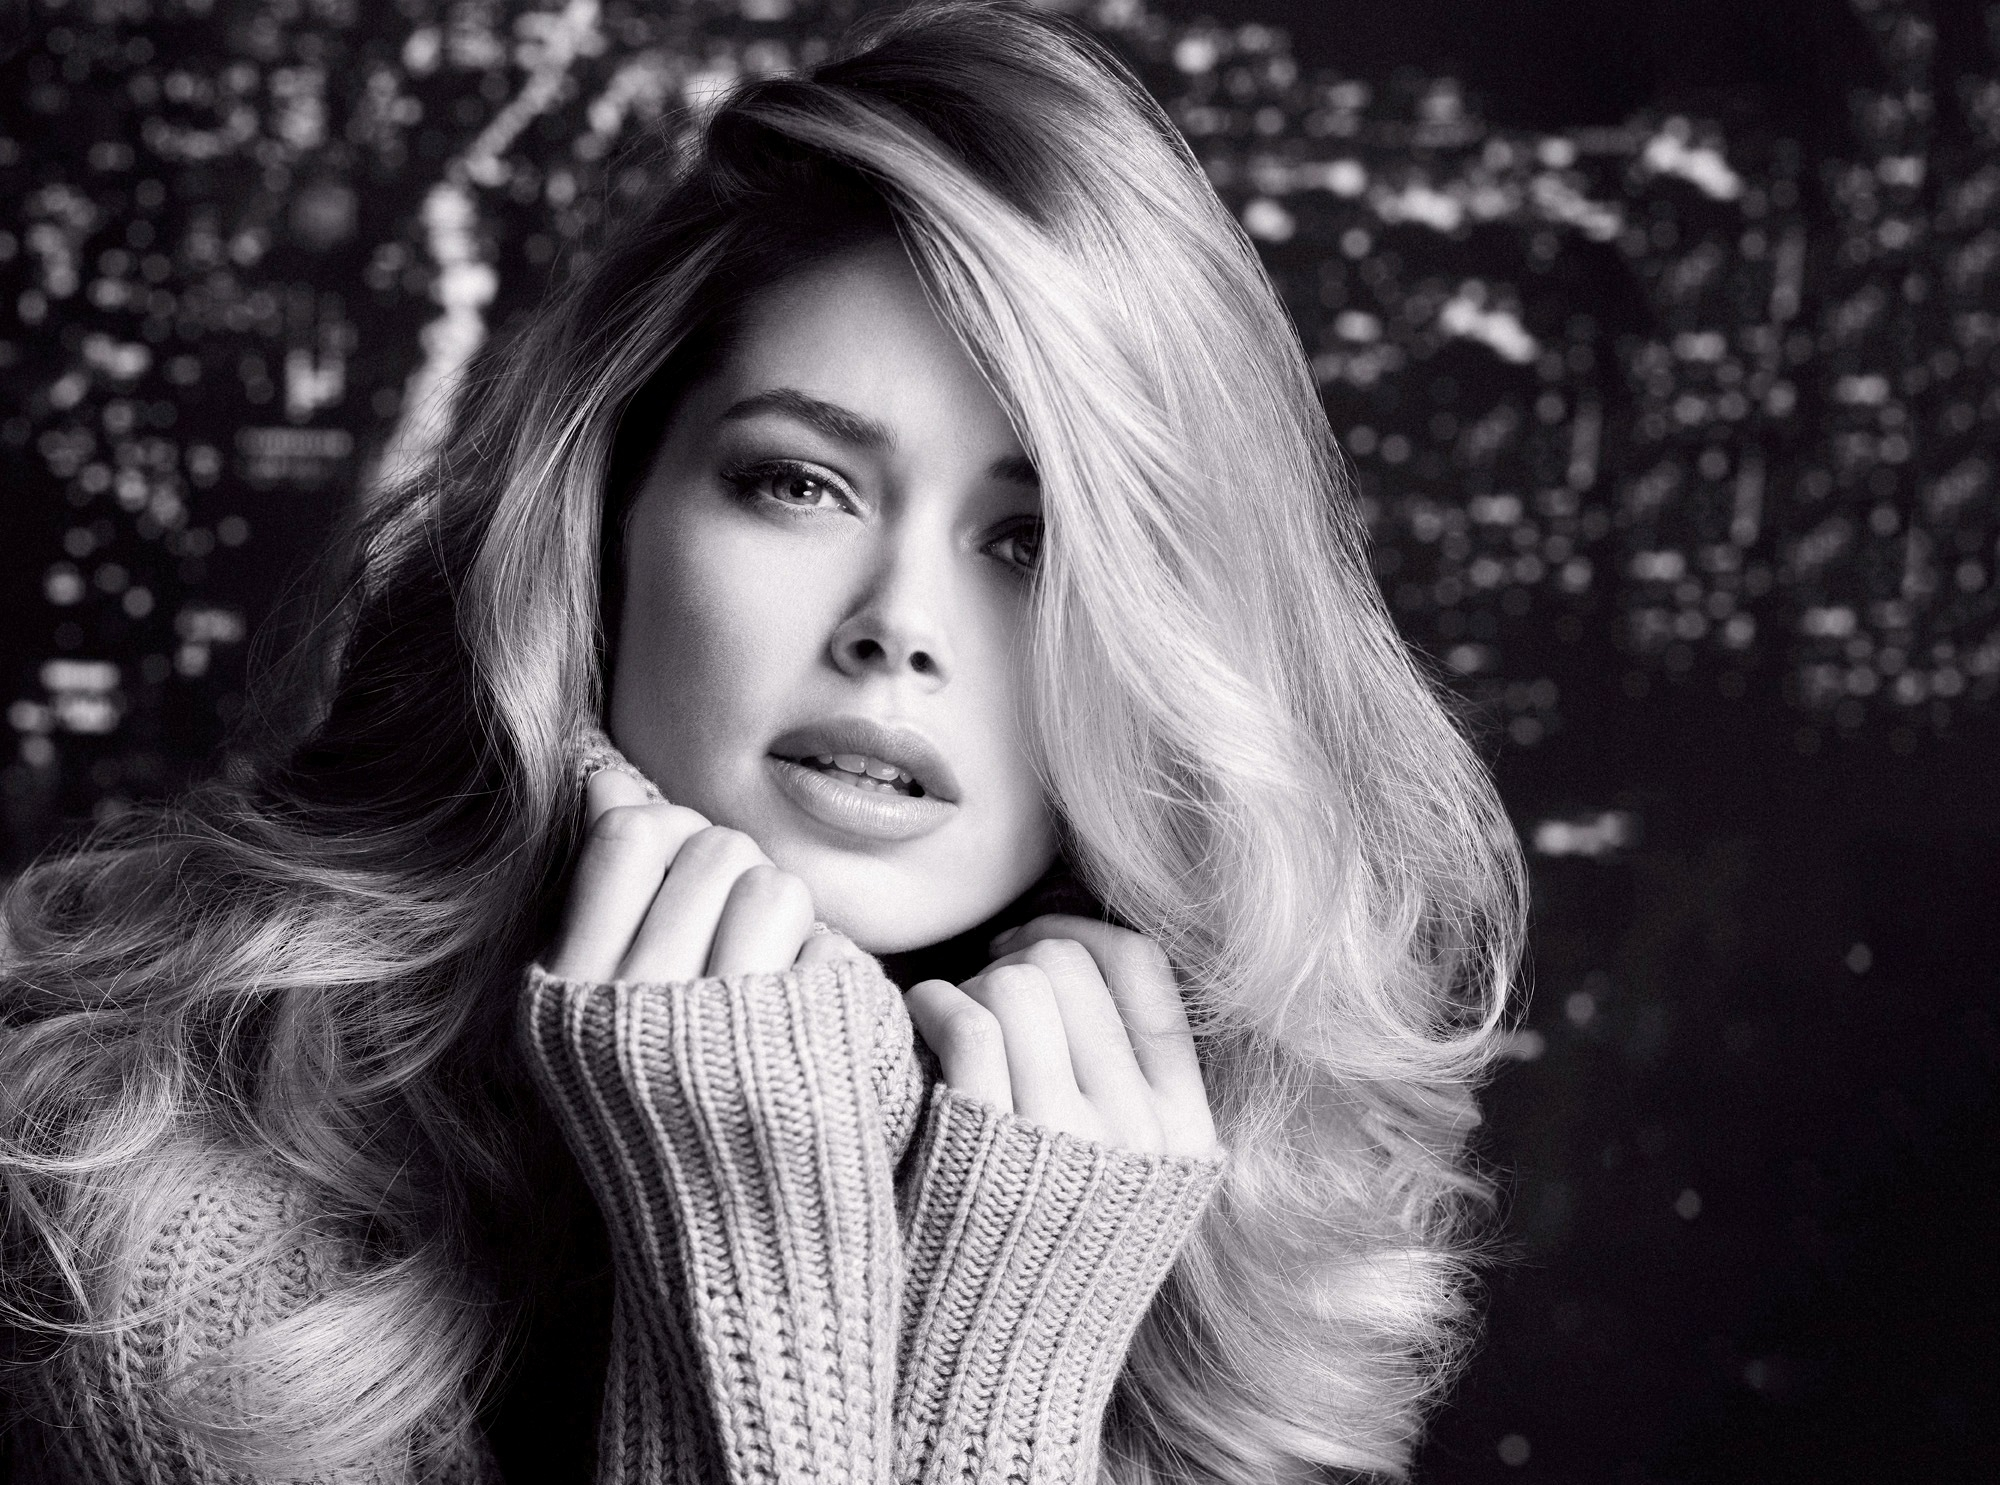 desktop doutzen kroes lovely look mobile hd background free wallpaper